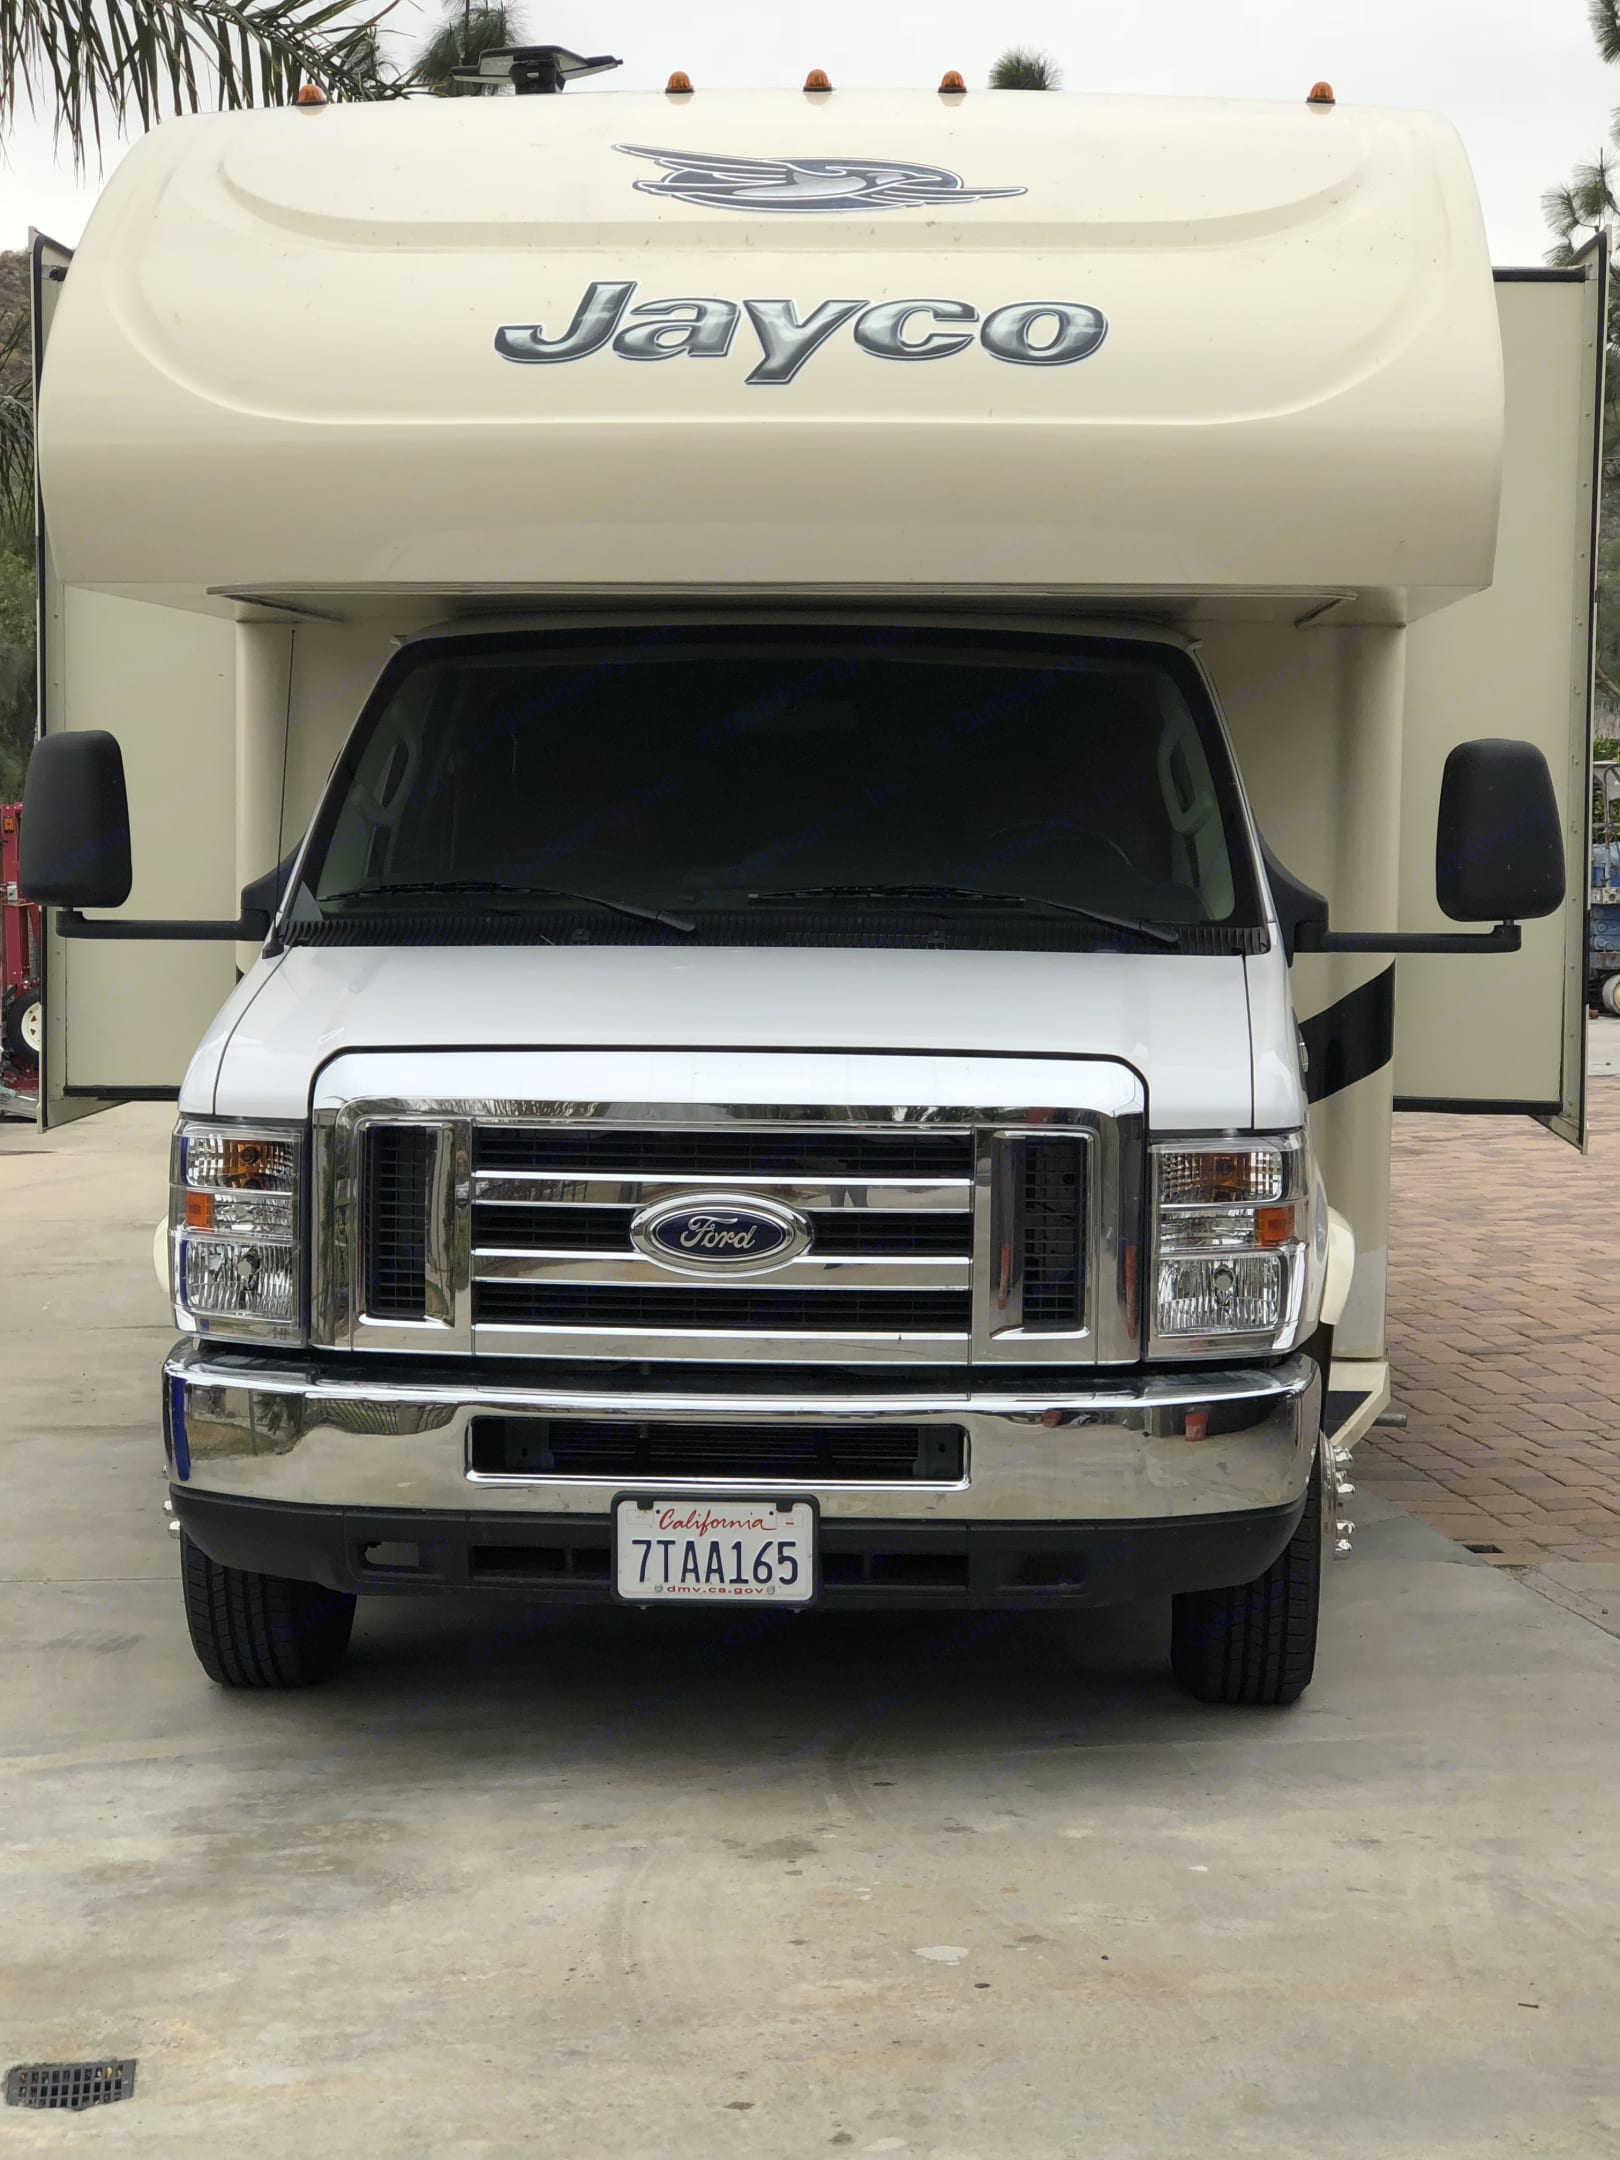 Ford E450 Chassis with V10 Engine. Jayco Greyhawk 2016